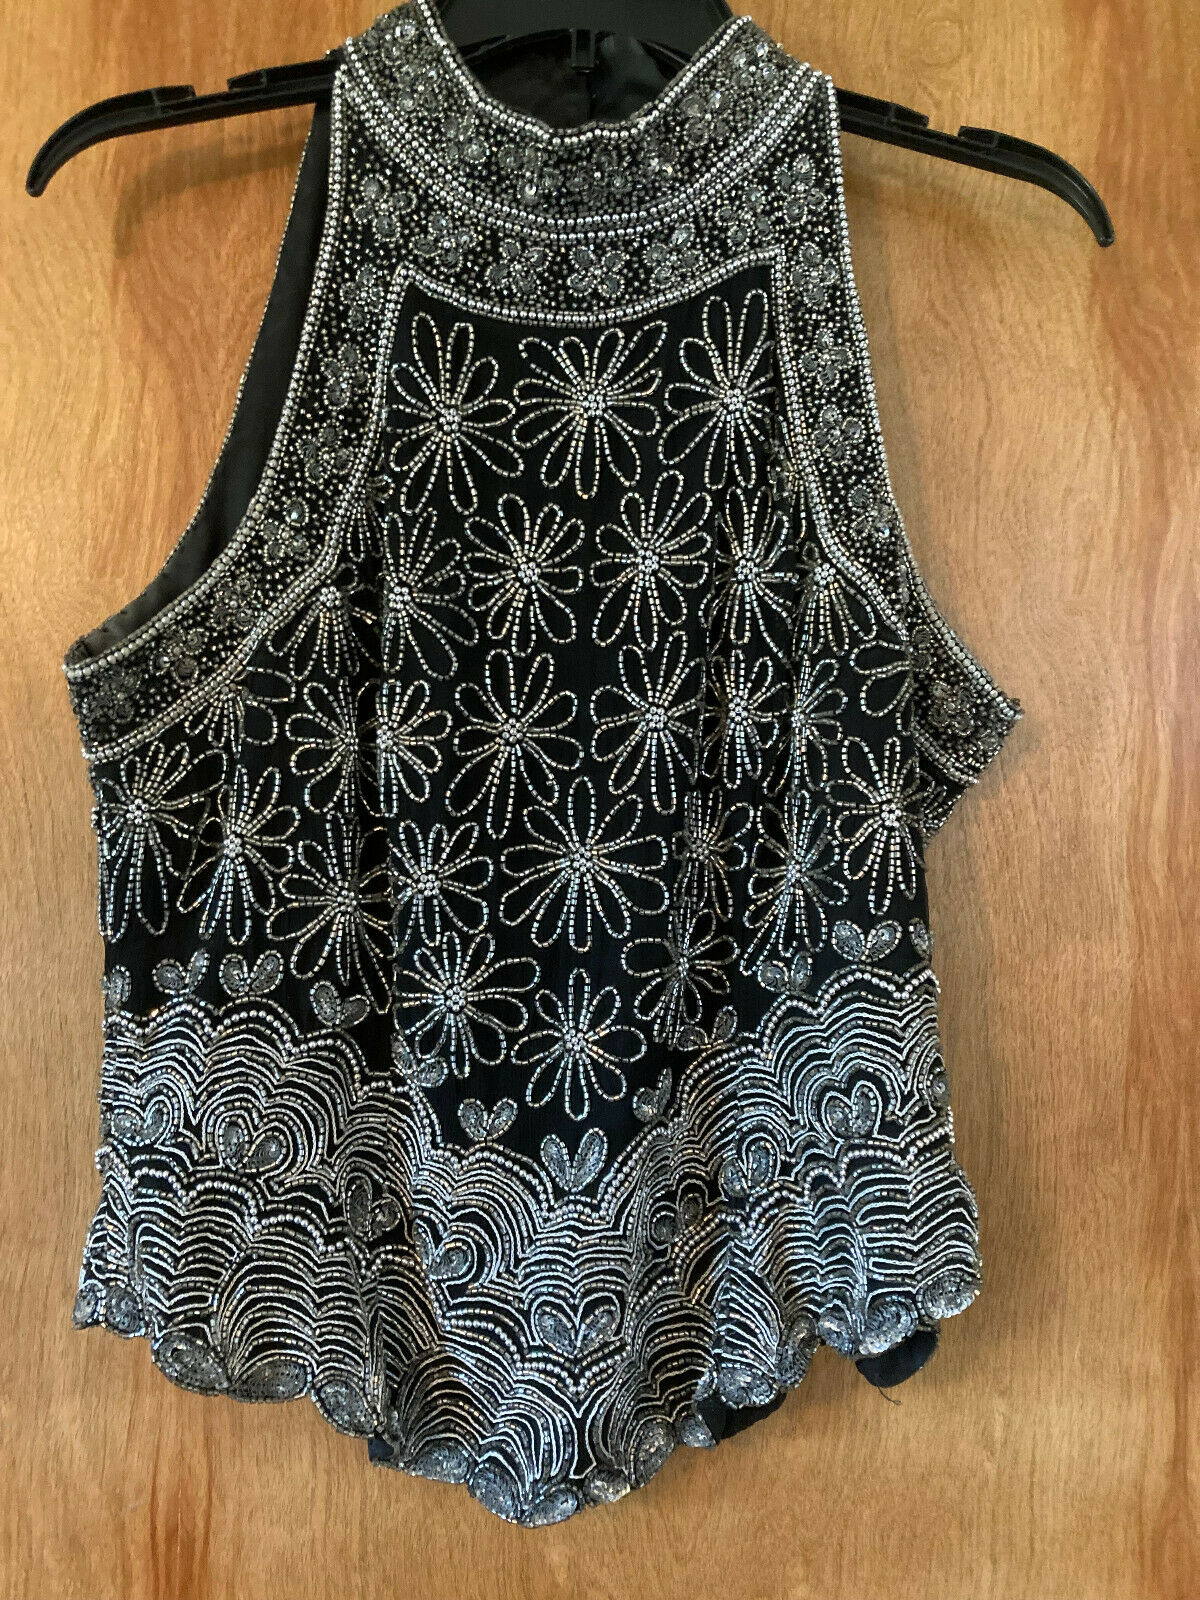 Papell Boutique Evening Sleeveless Top - Black/Silver Beaded - Silk - Large - EC